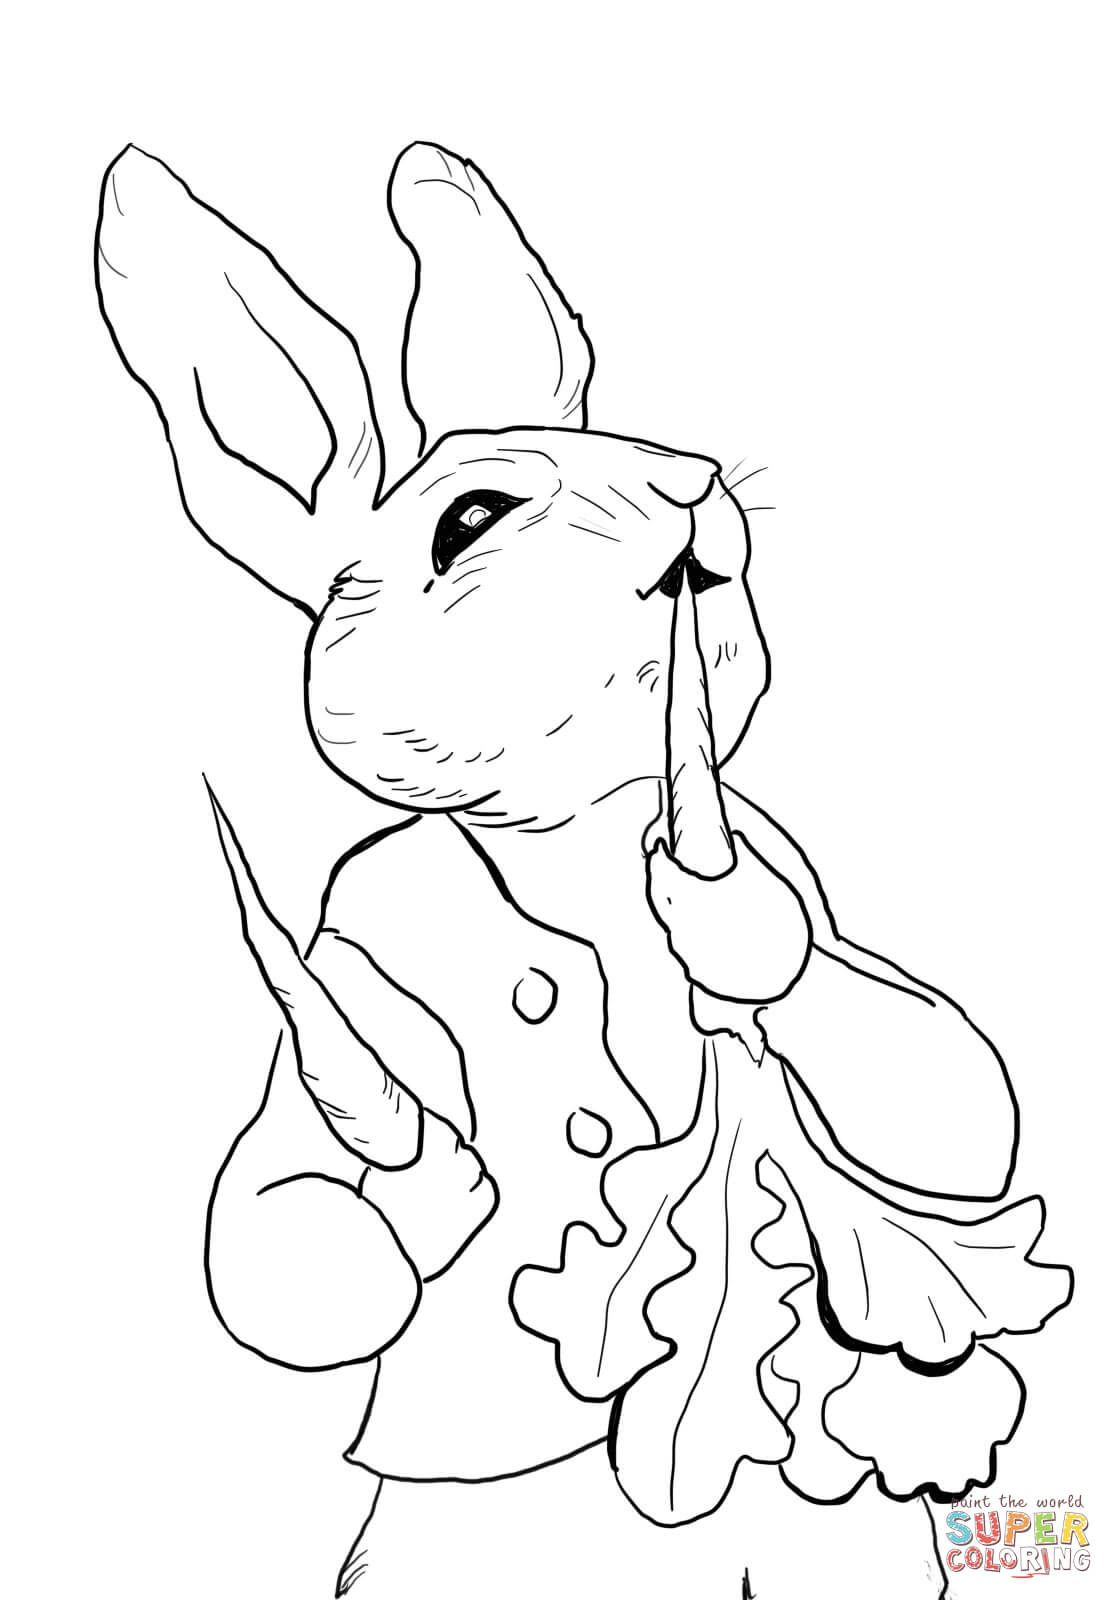 Peter Rabbit Coloring Pages Printable